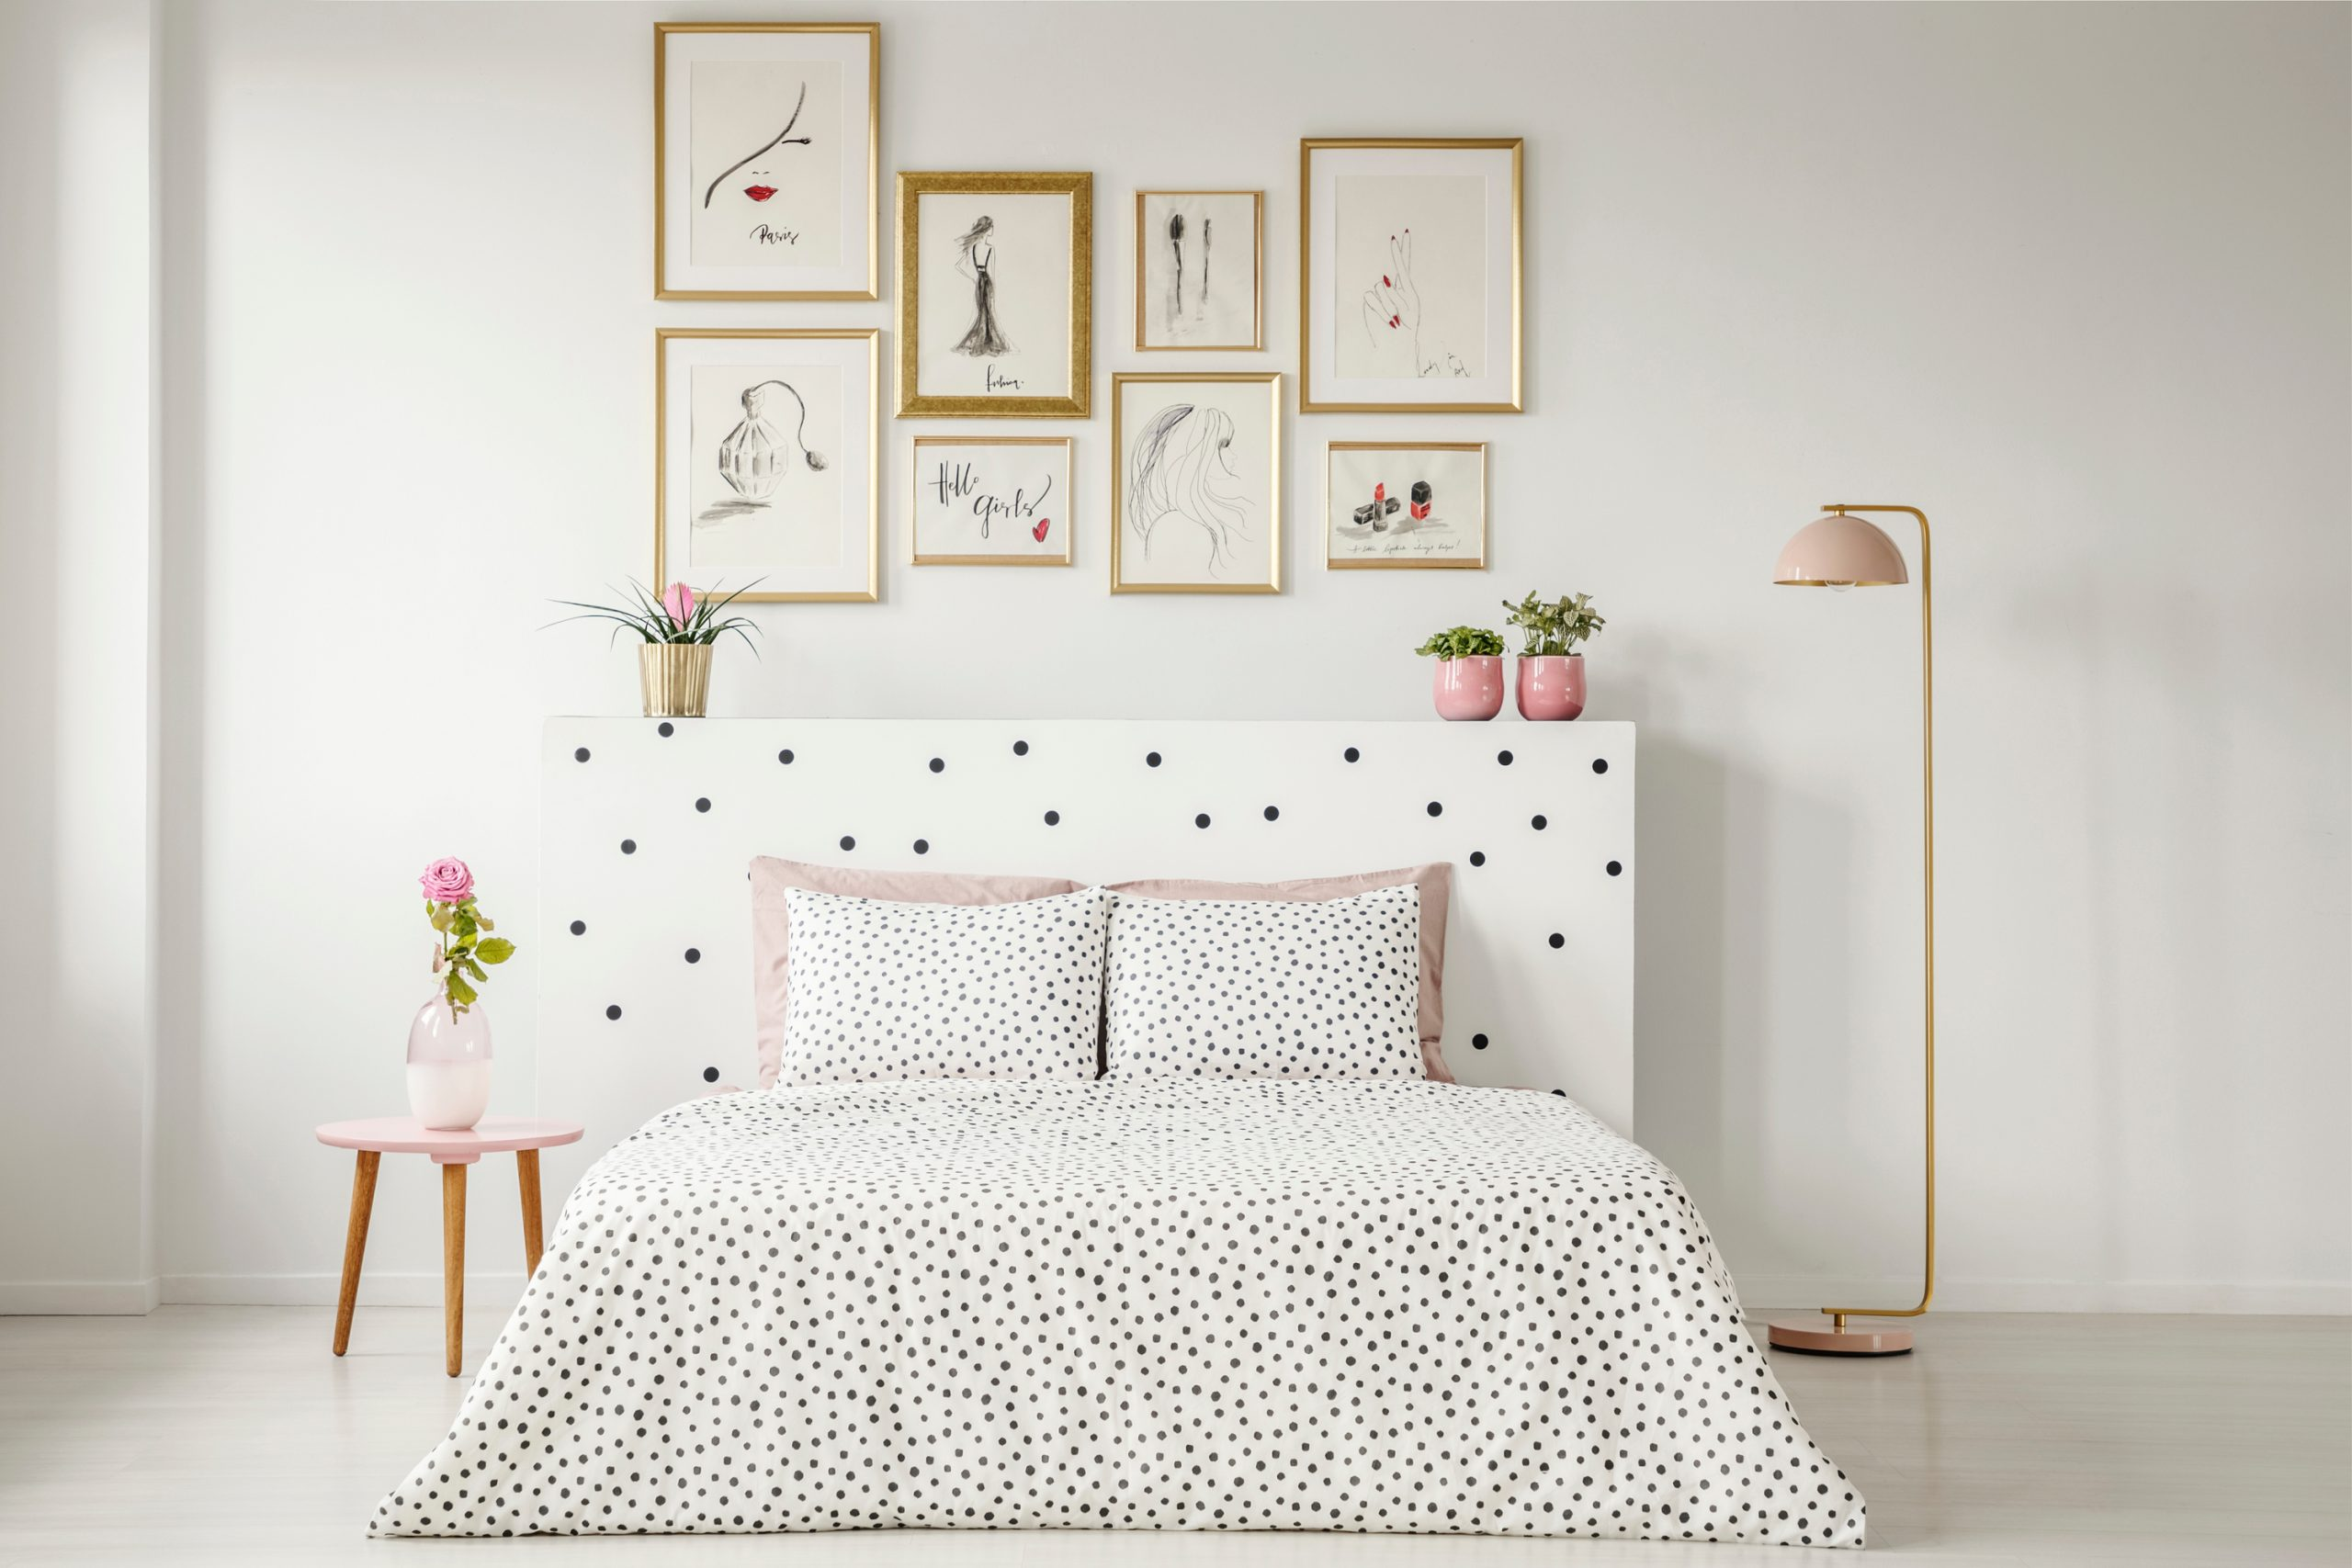 Calling all DIY lovers!!! These DIY headboard ideas will certainly get you excited about changing up your room. See how easy they are to make.